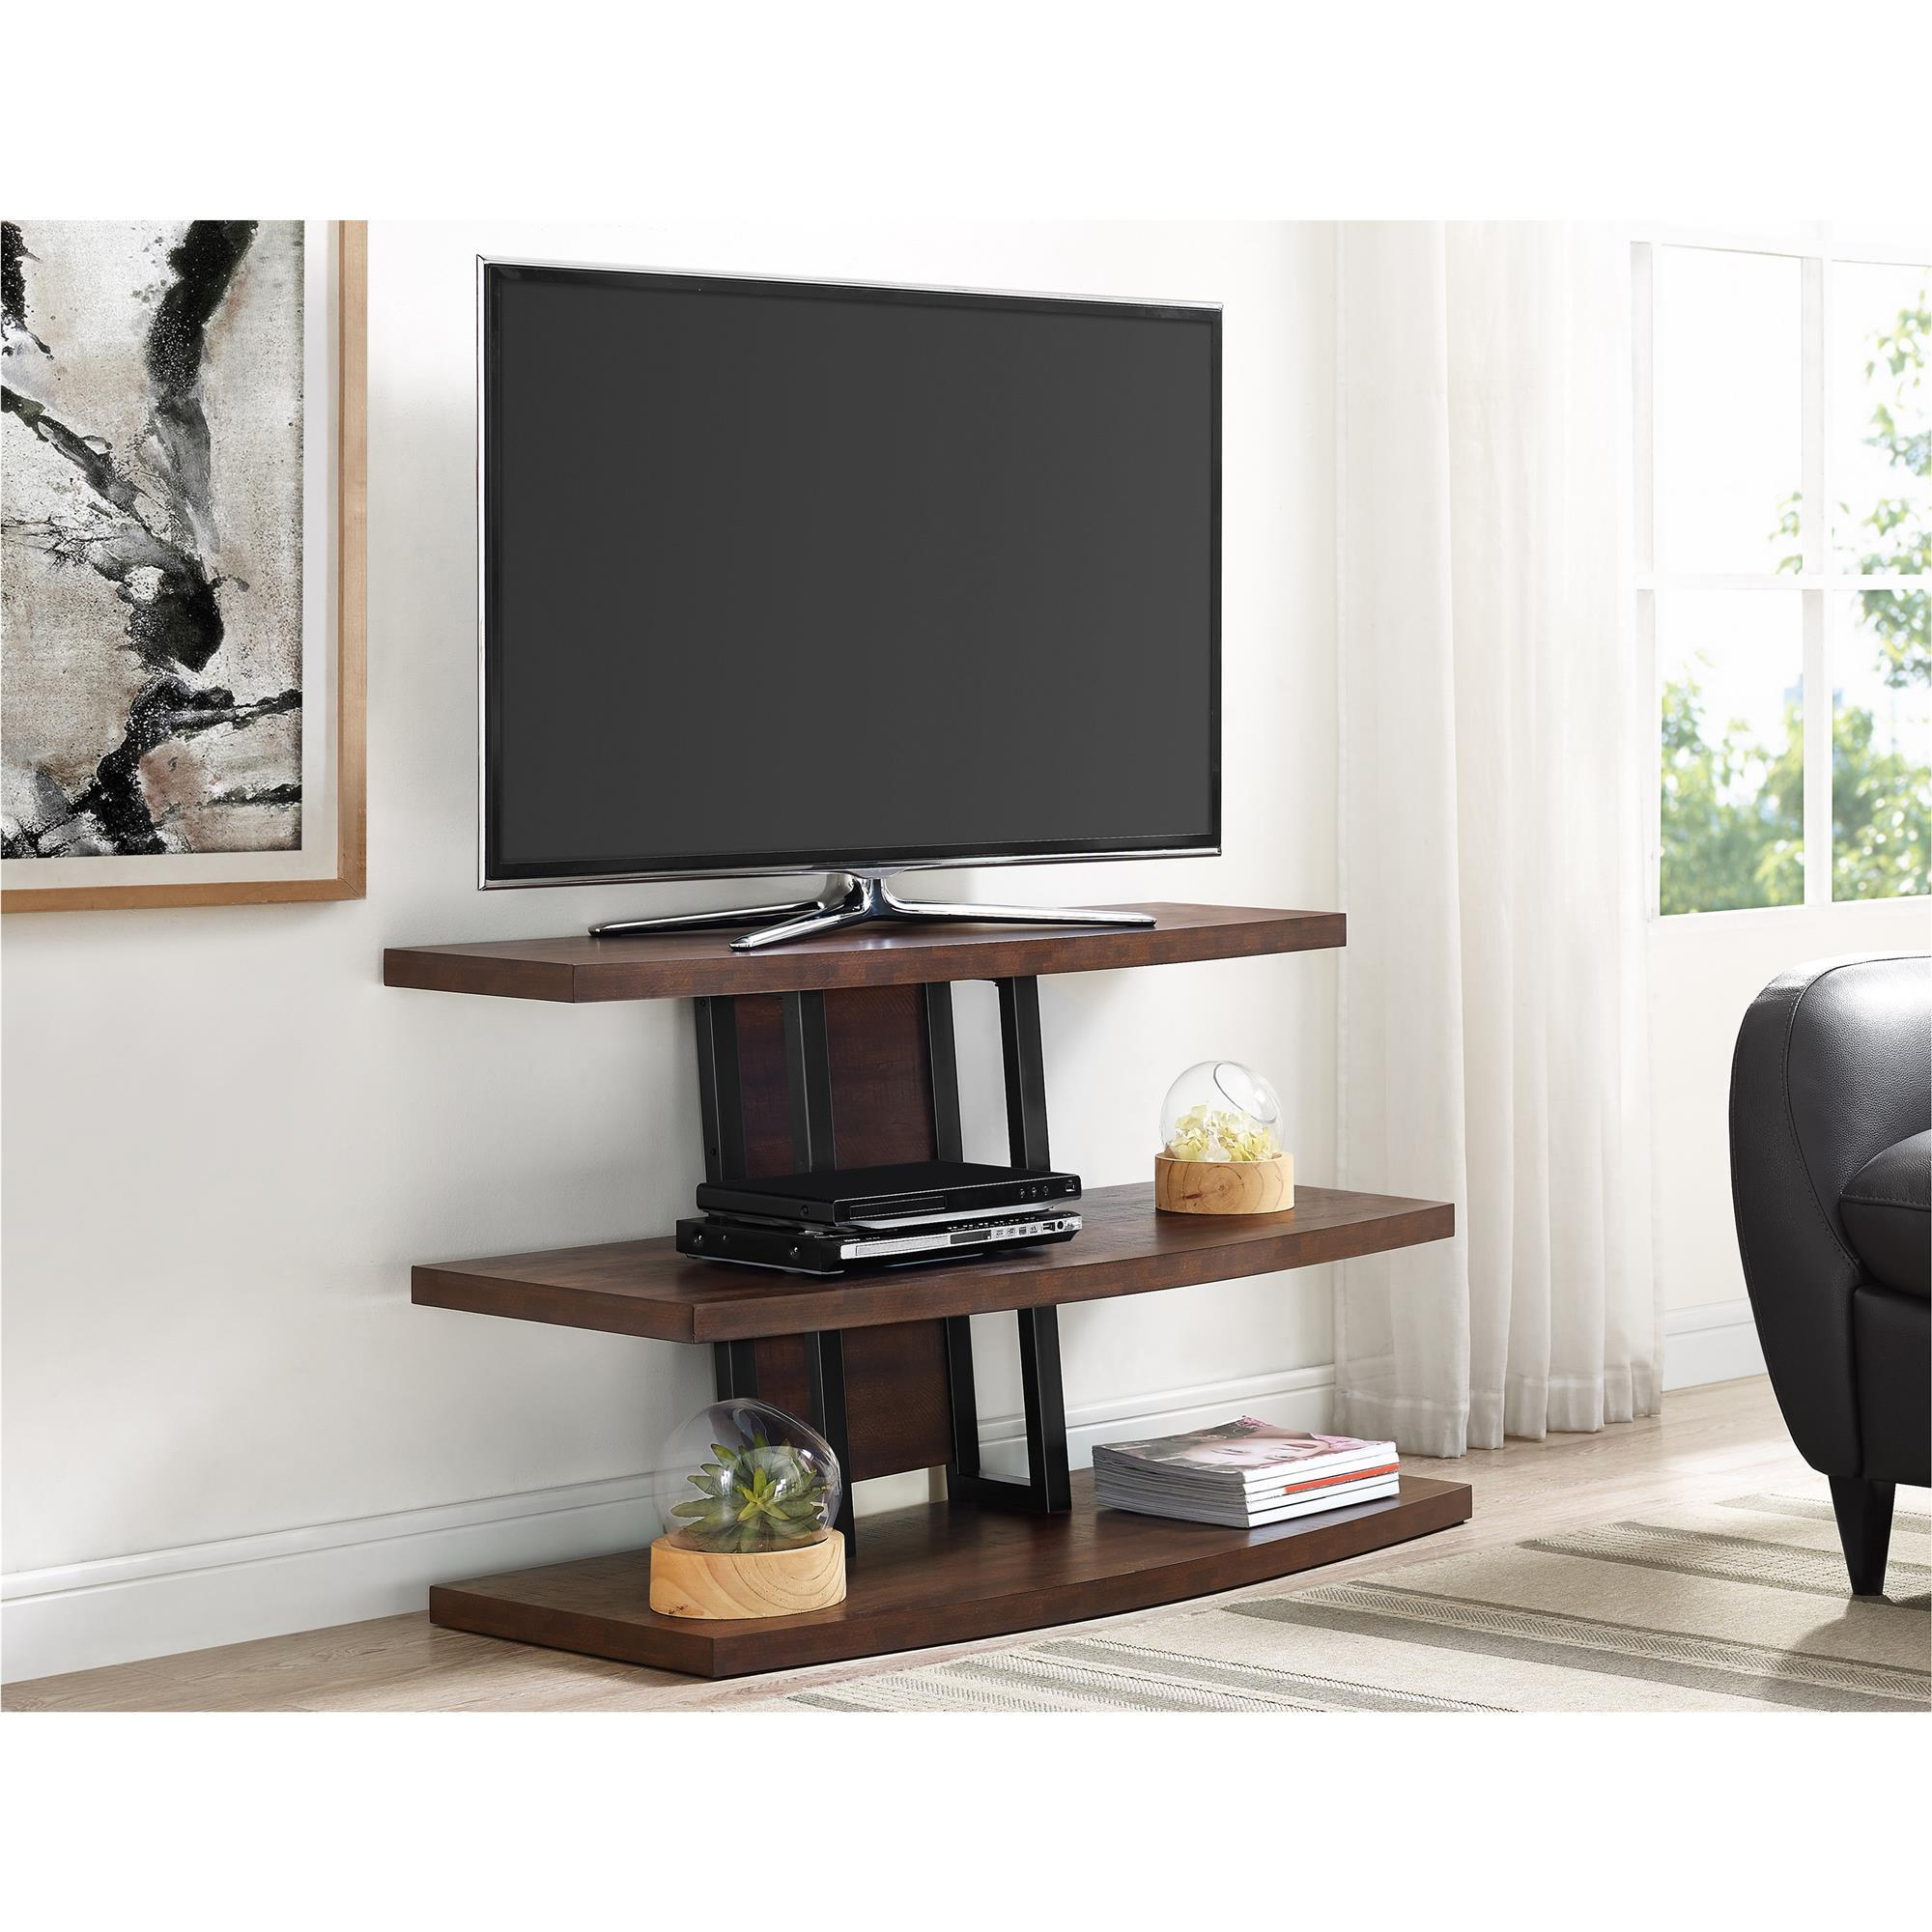 Shop Ameriwood Home Castling Espresso Black Tv Stand For Tvs Up To